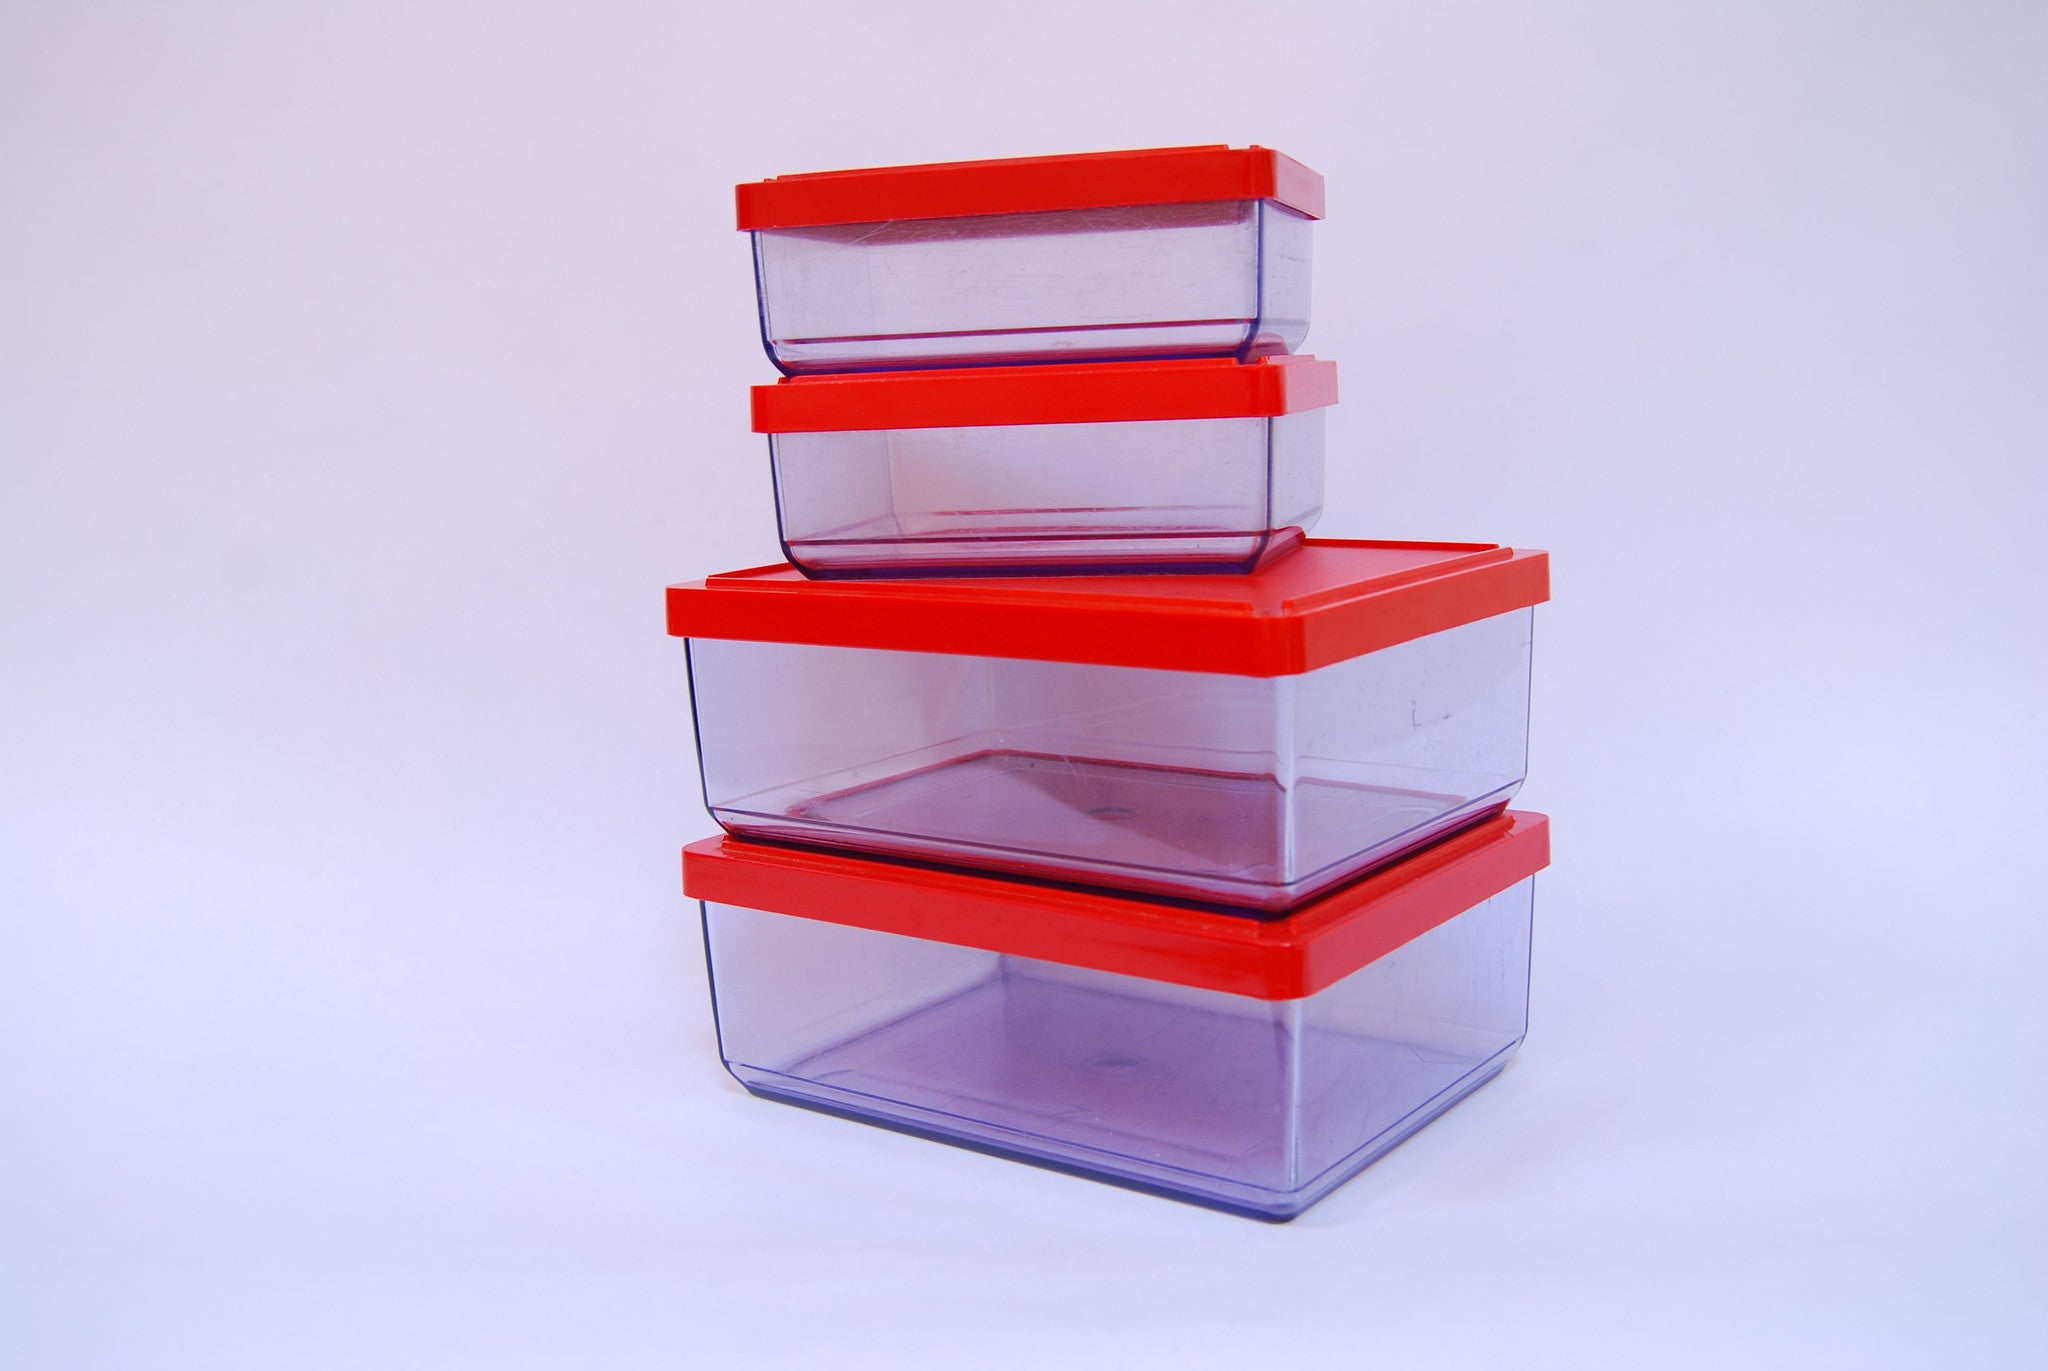 Selection of vintage storage containers